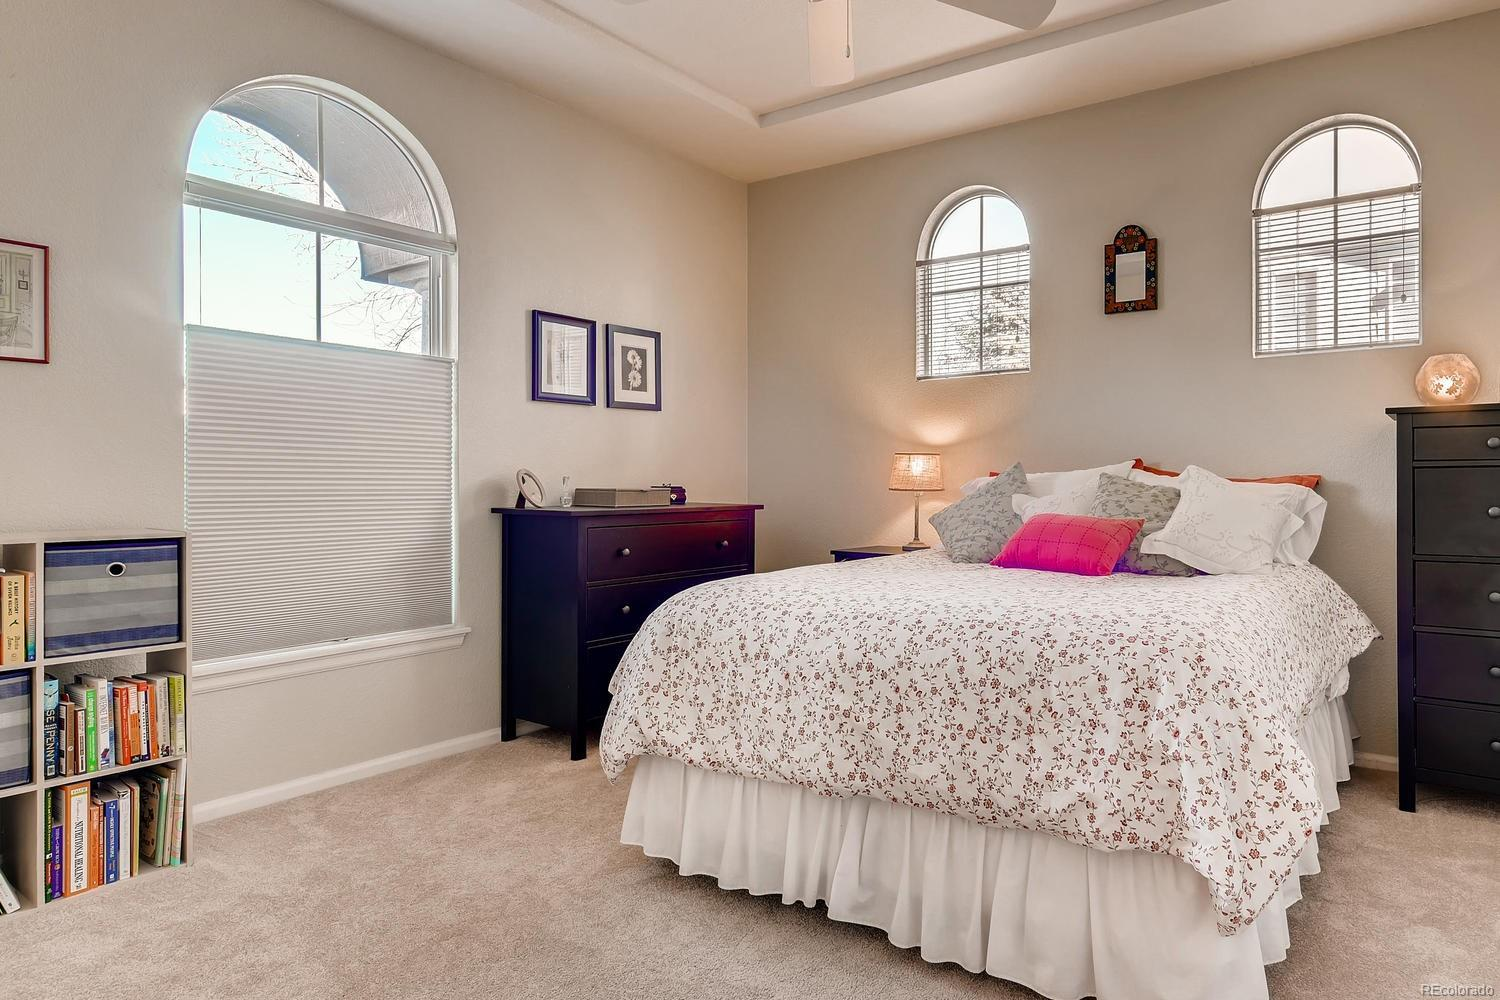 Master bedroom with private bathroom